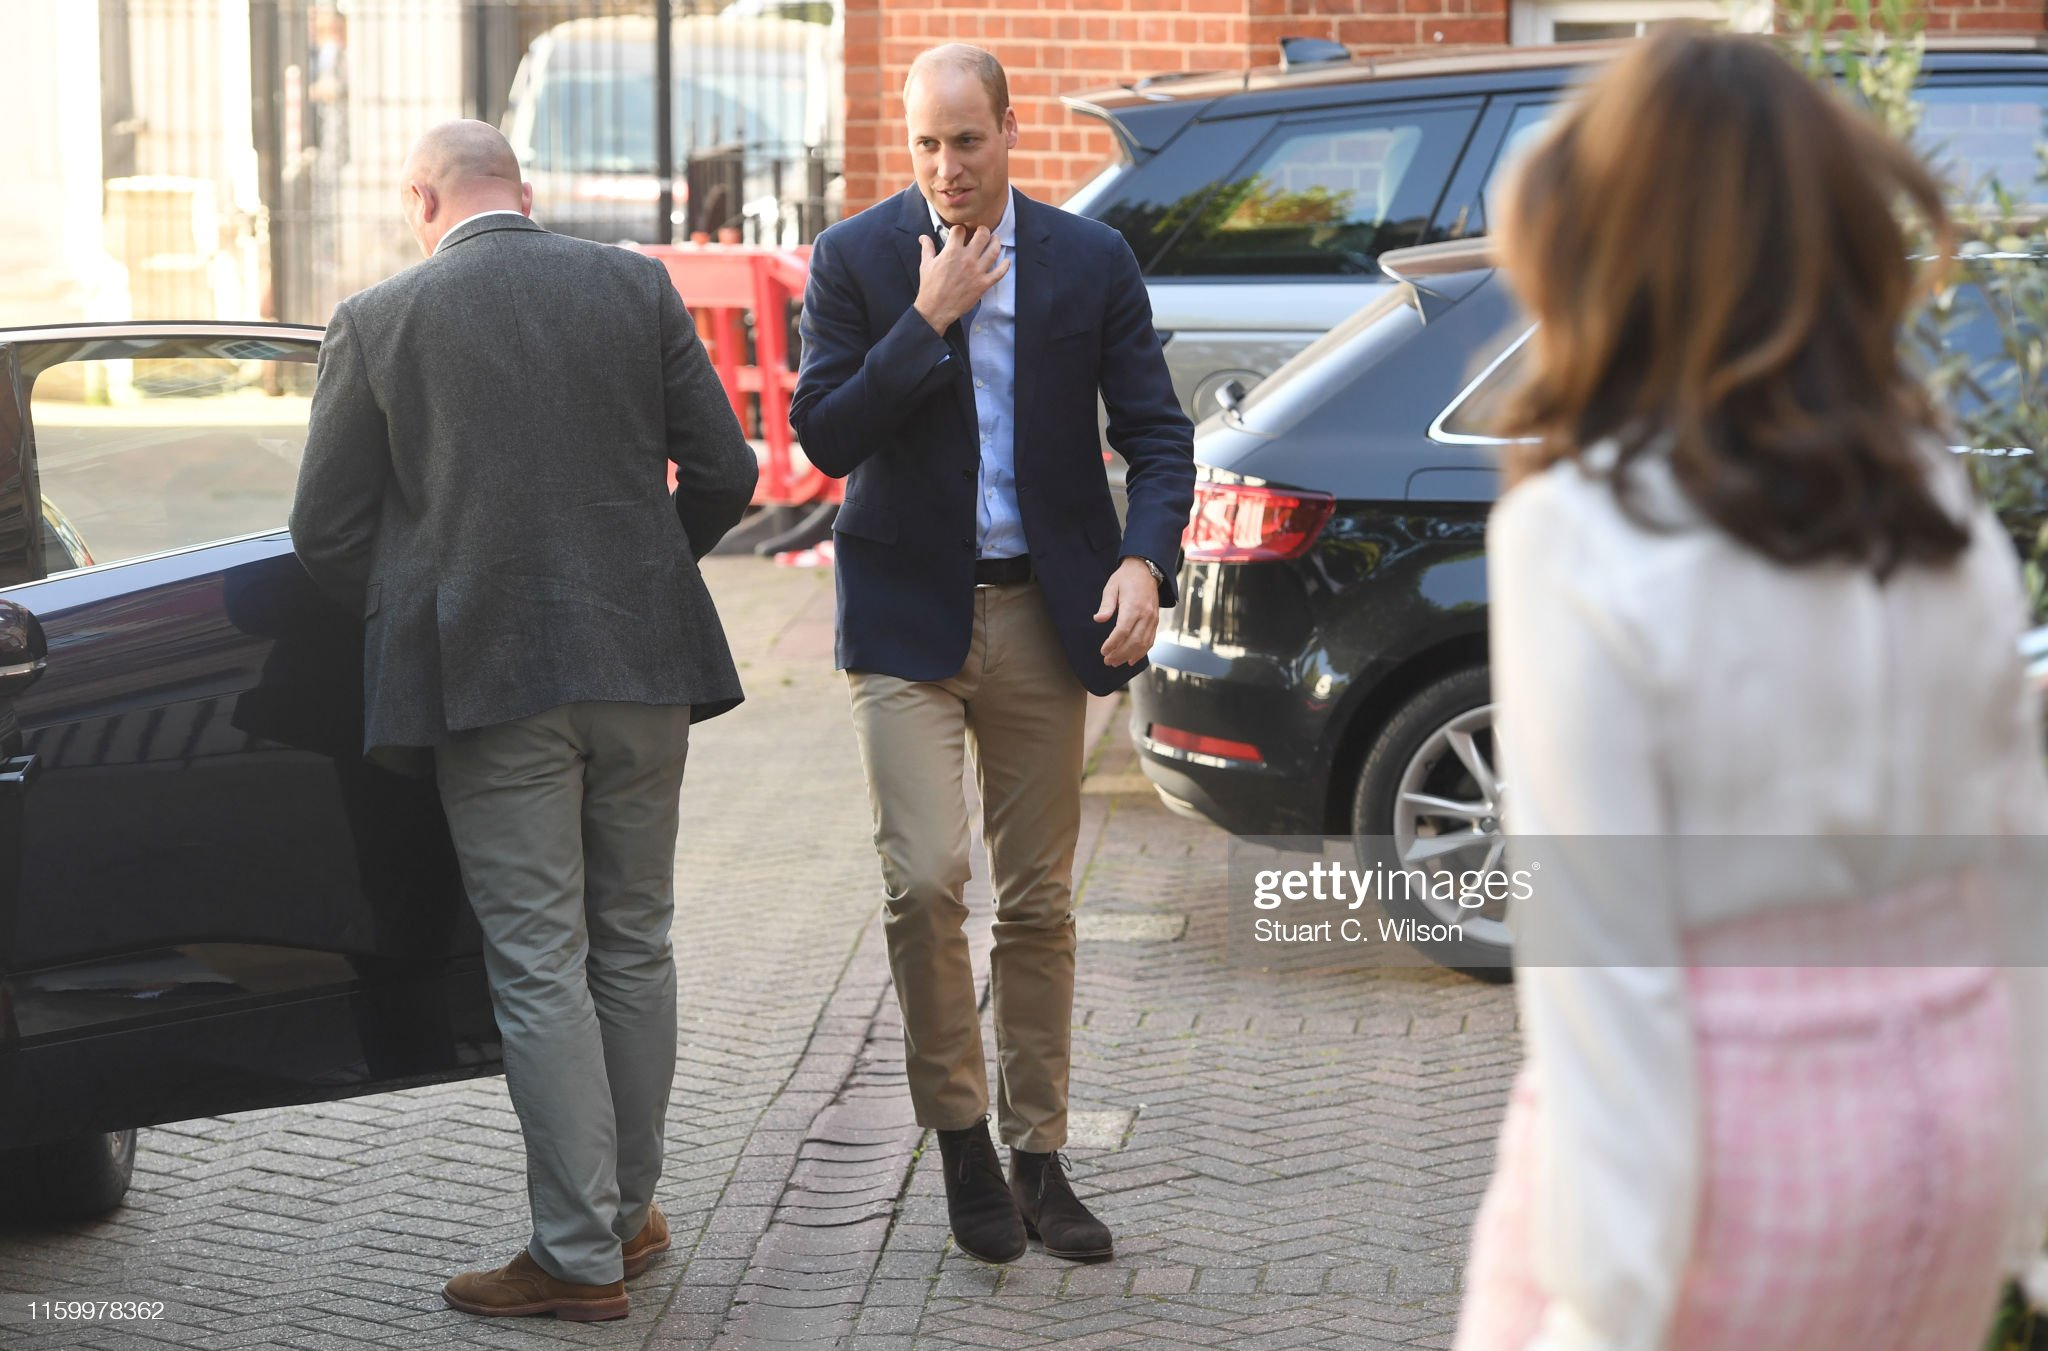 prince-william-duke-of-cambridge-visits-the-royal-marsden-on-july-04-picture-id1159978362